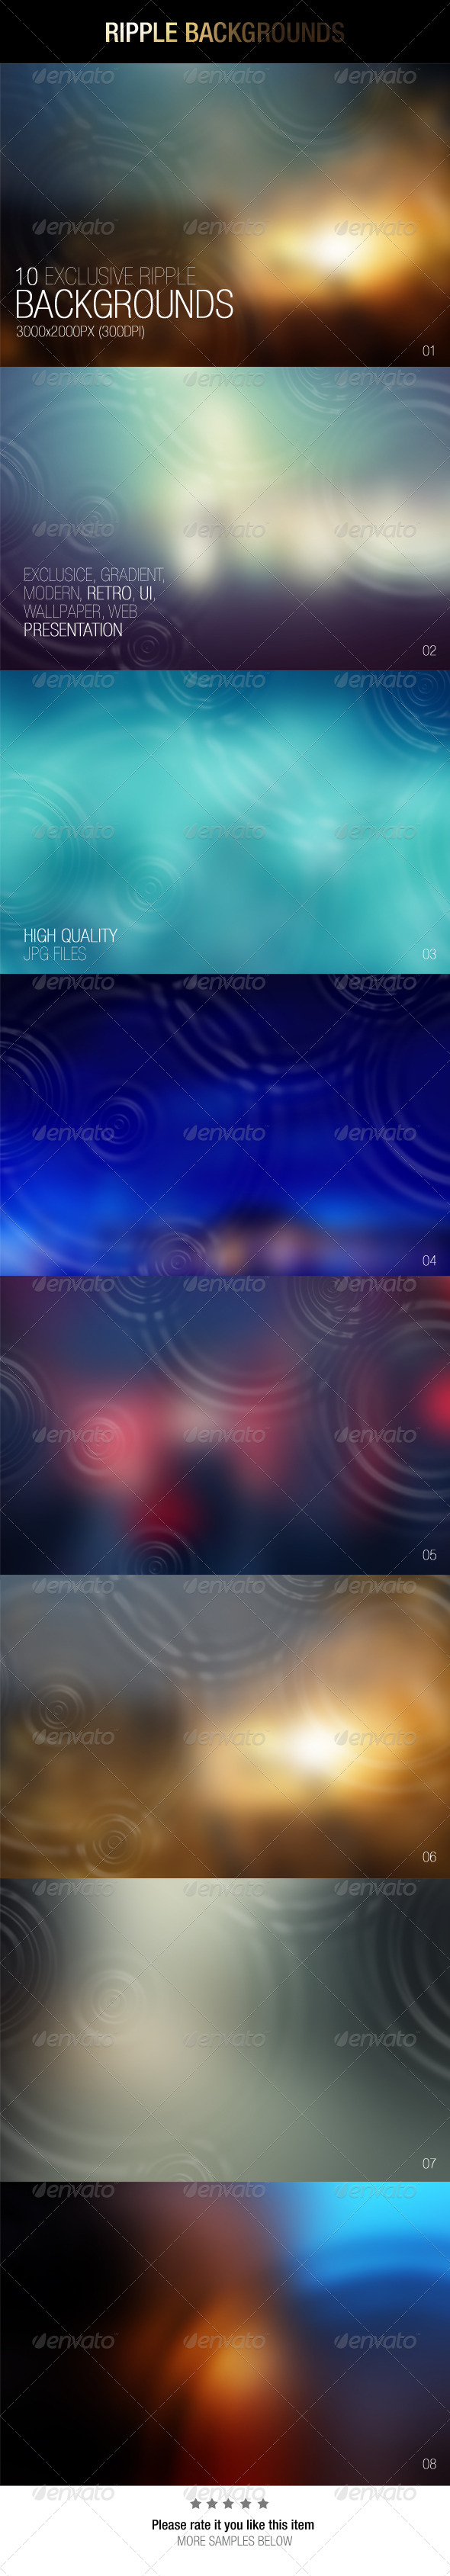 GraphicRiver Ripple Backgrounds 6996723